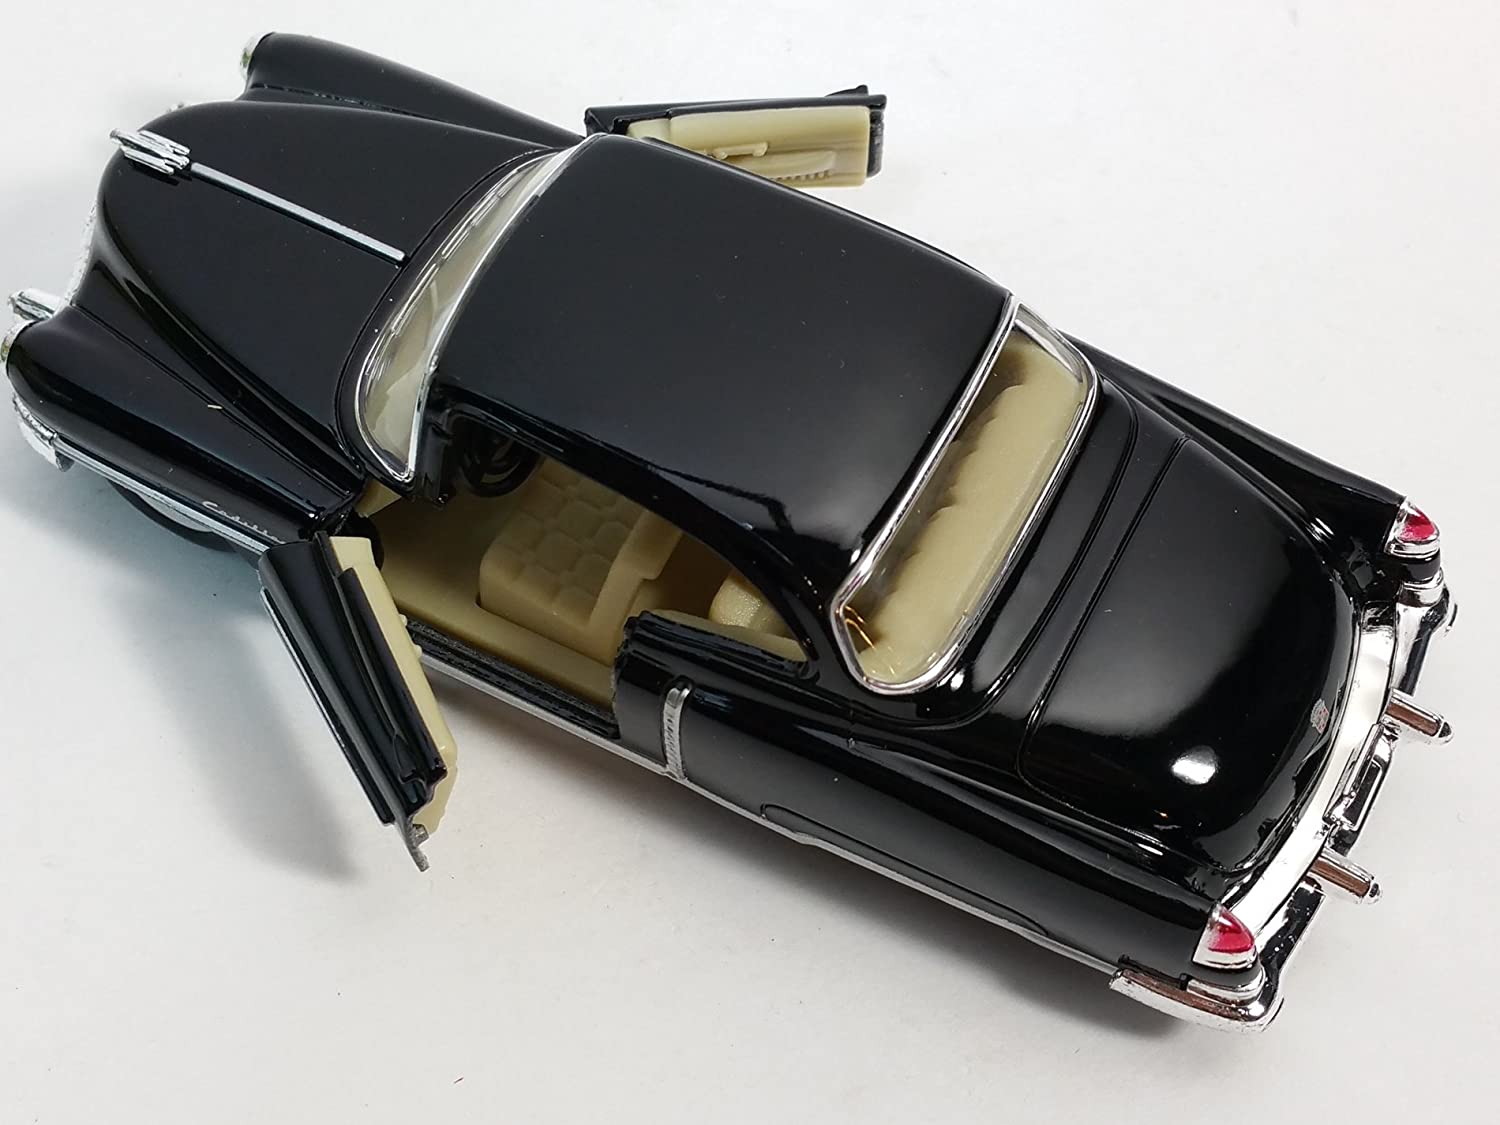 Kinsmart 1953 Cadillac Series 62 Black 2 Door Coupe 1//43 O Scale Diecast Car